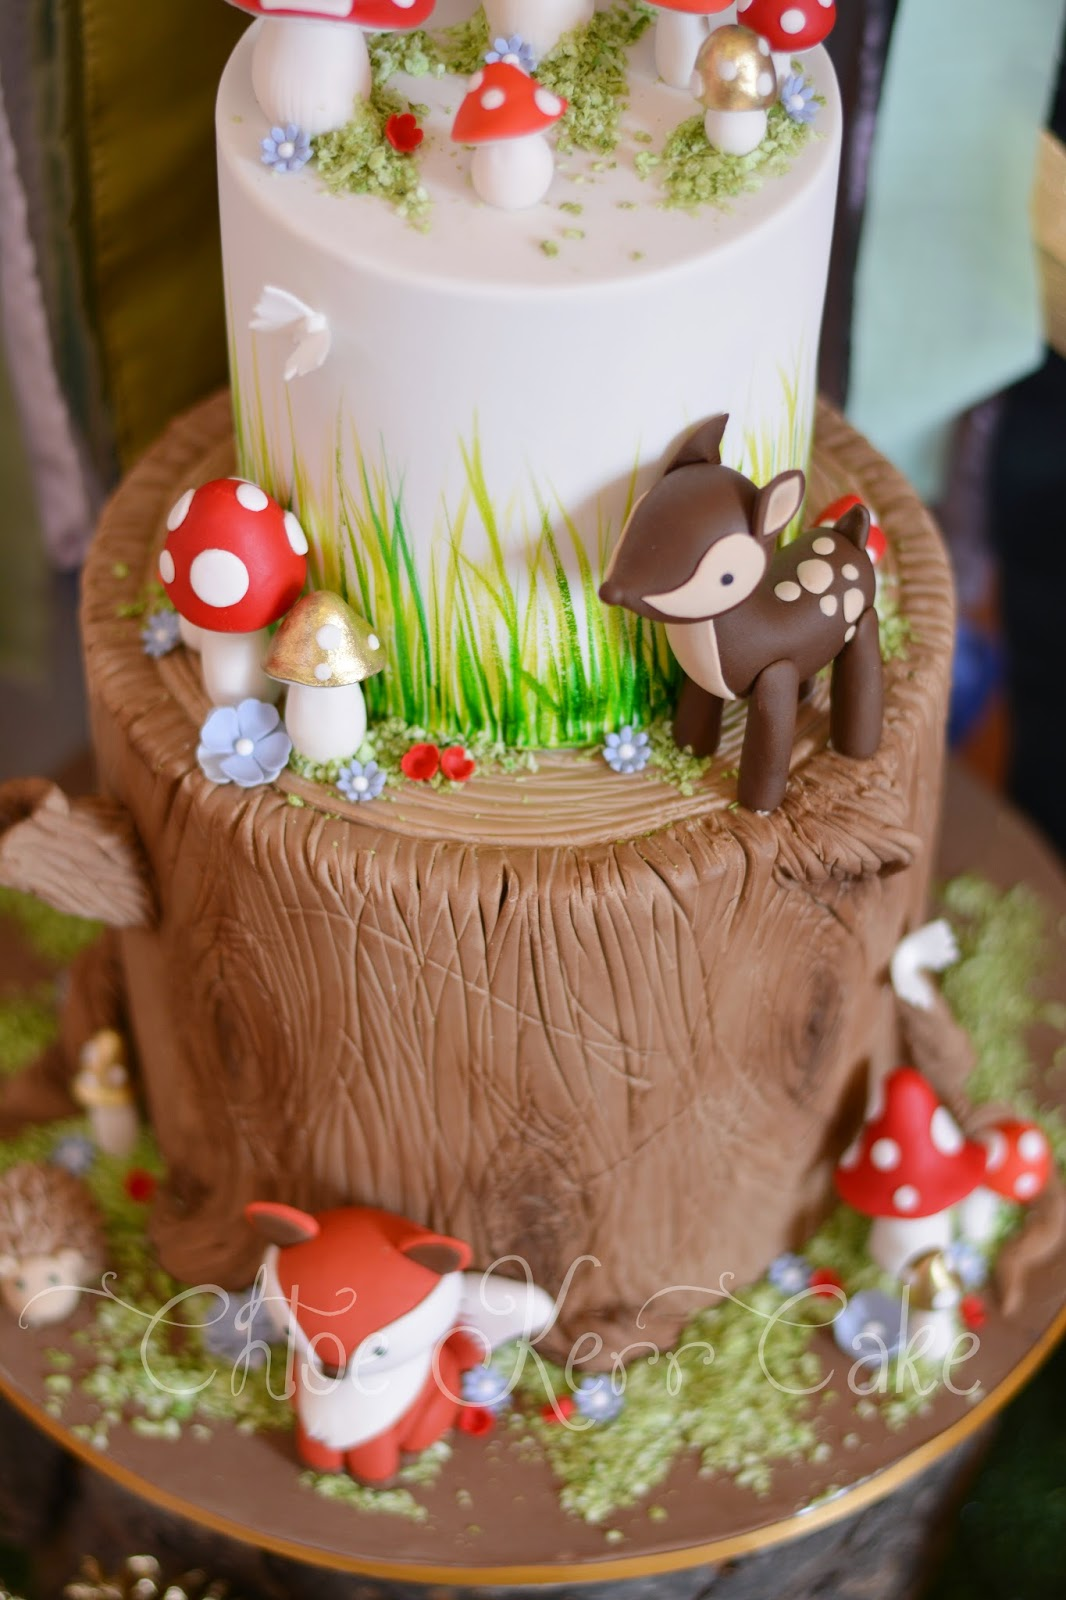 Chloe Kerr Cake: woodlands baby shower